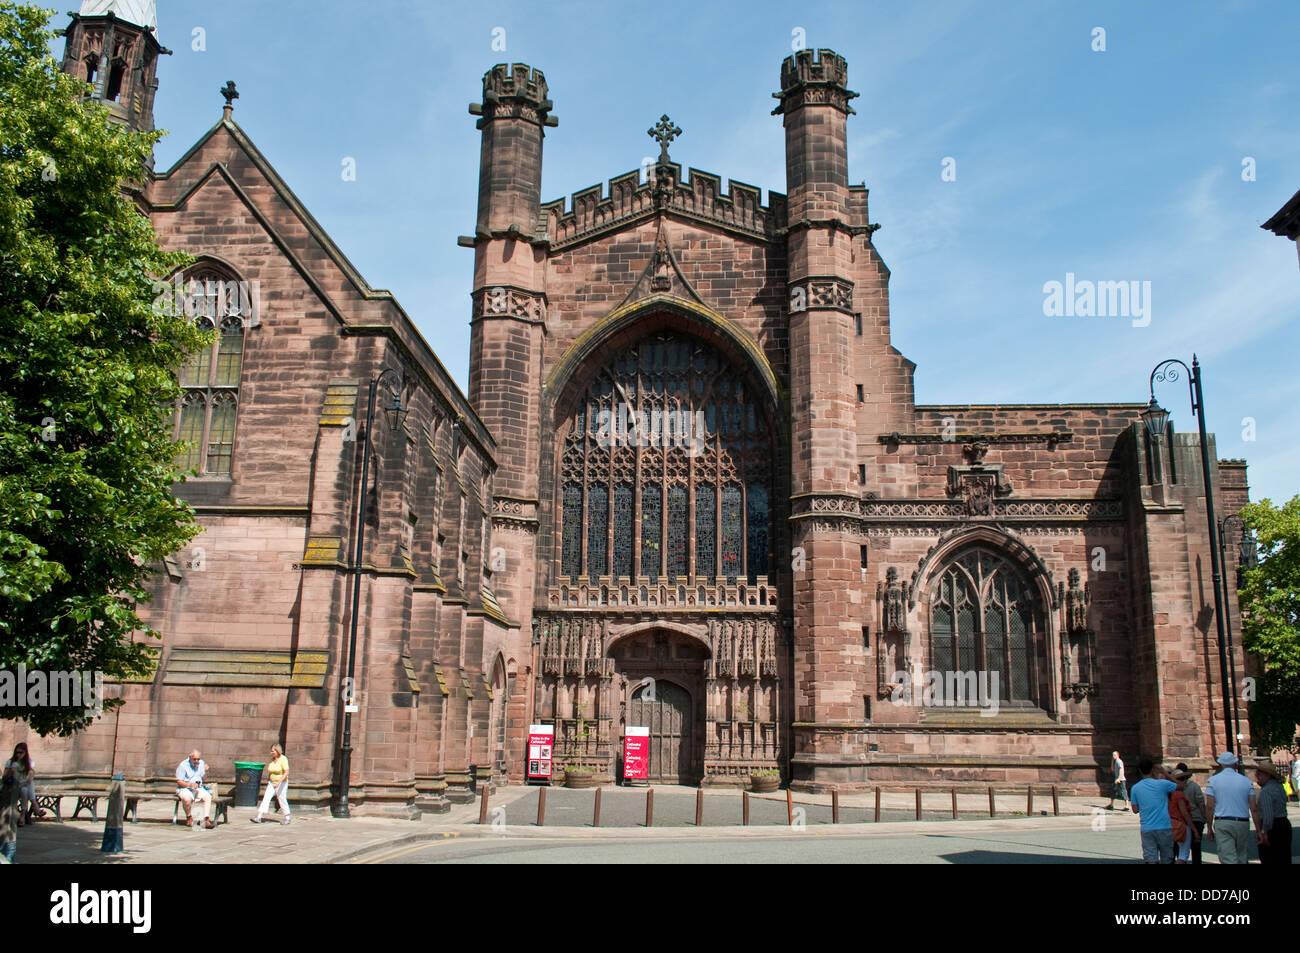 Chester Cathedral, The west front with recessed Perpendicular window and portal, Chester, UK - Stock Image